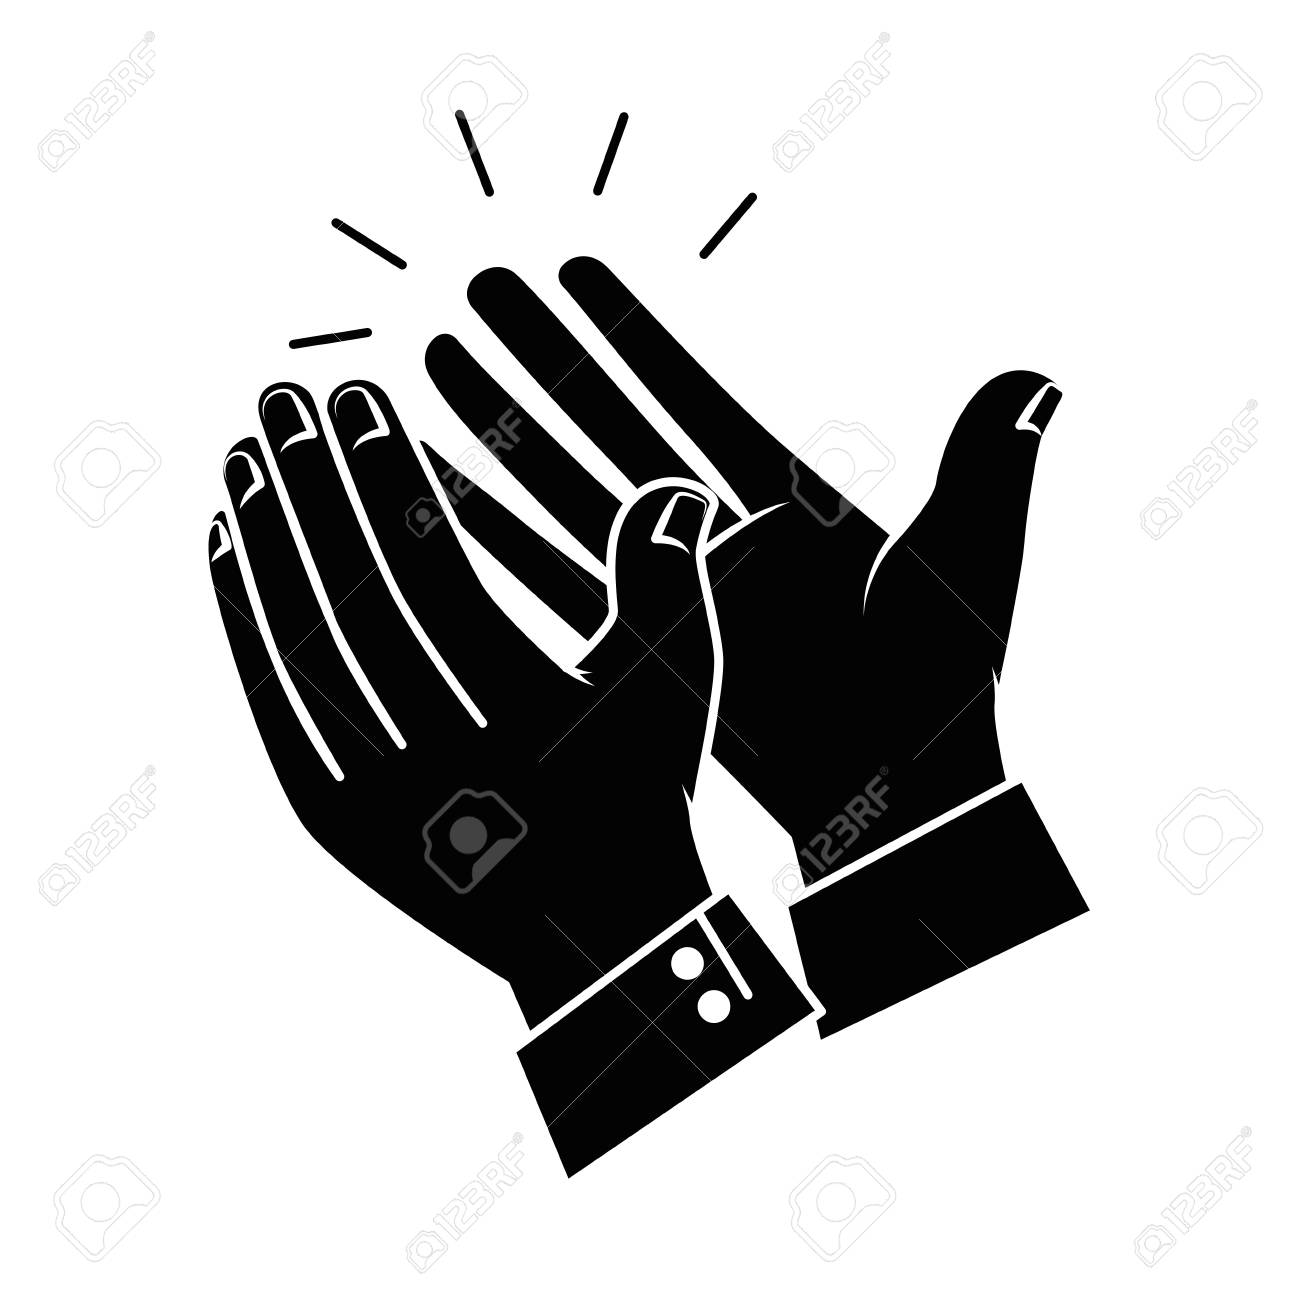 hands applauding isolated icon vector illustration design - 90474431